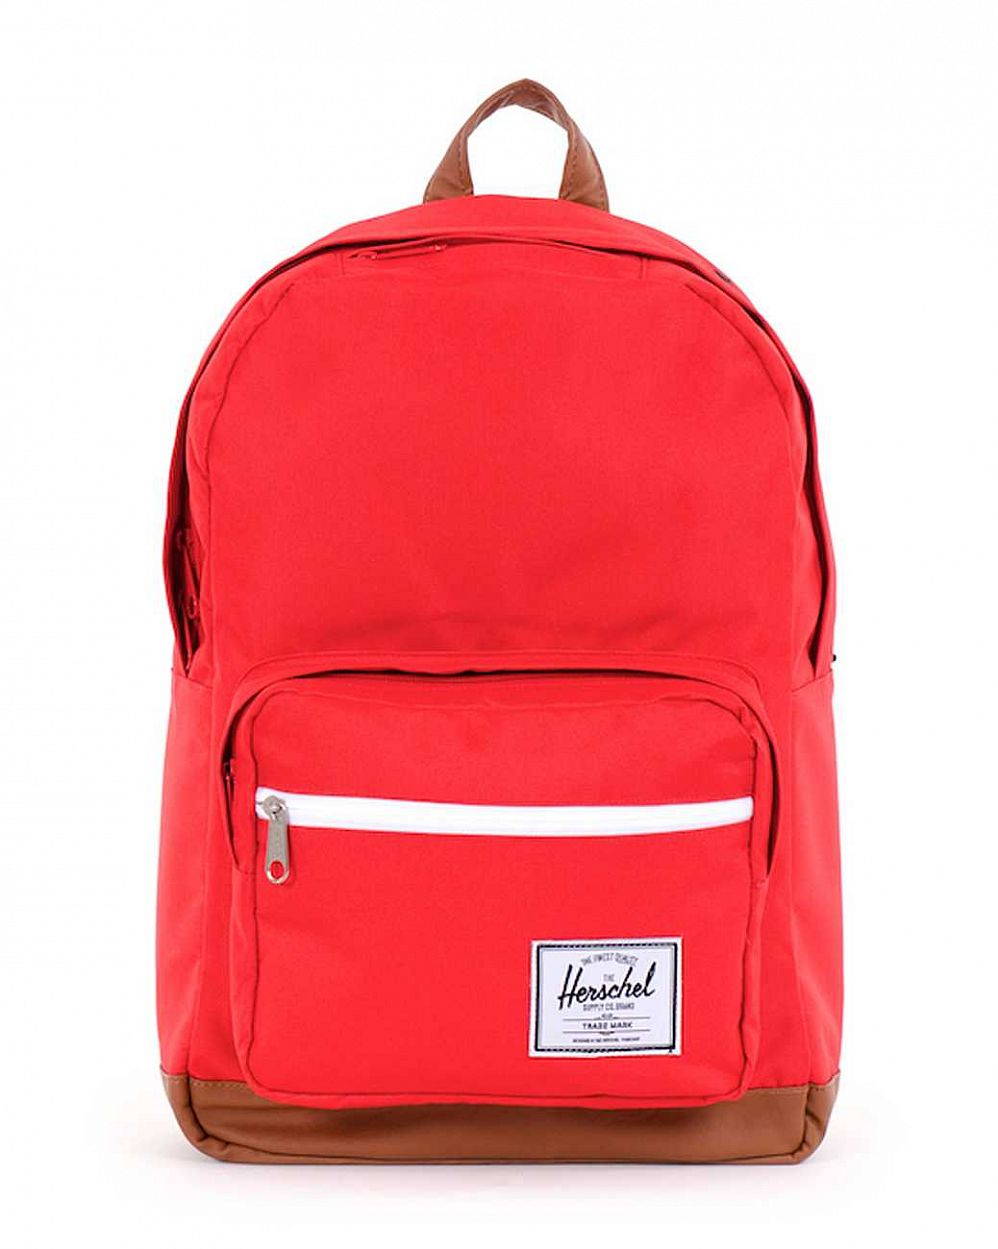 Рюкзак Herschel Pop Quiz Red 2 отзывы